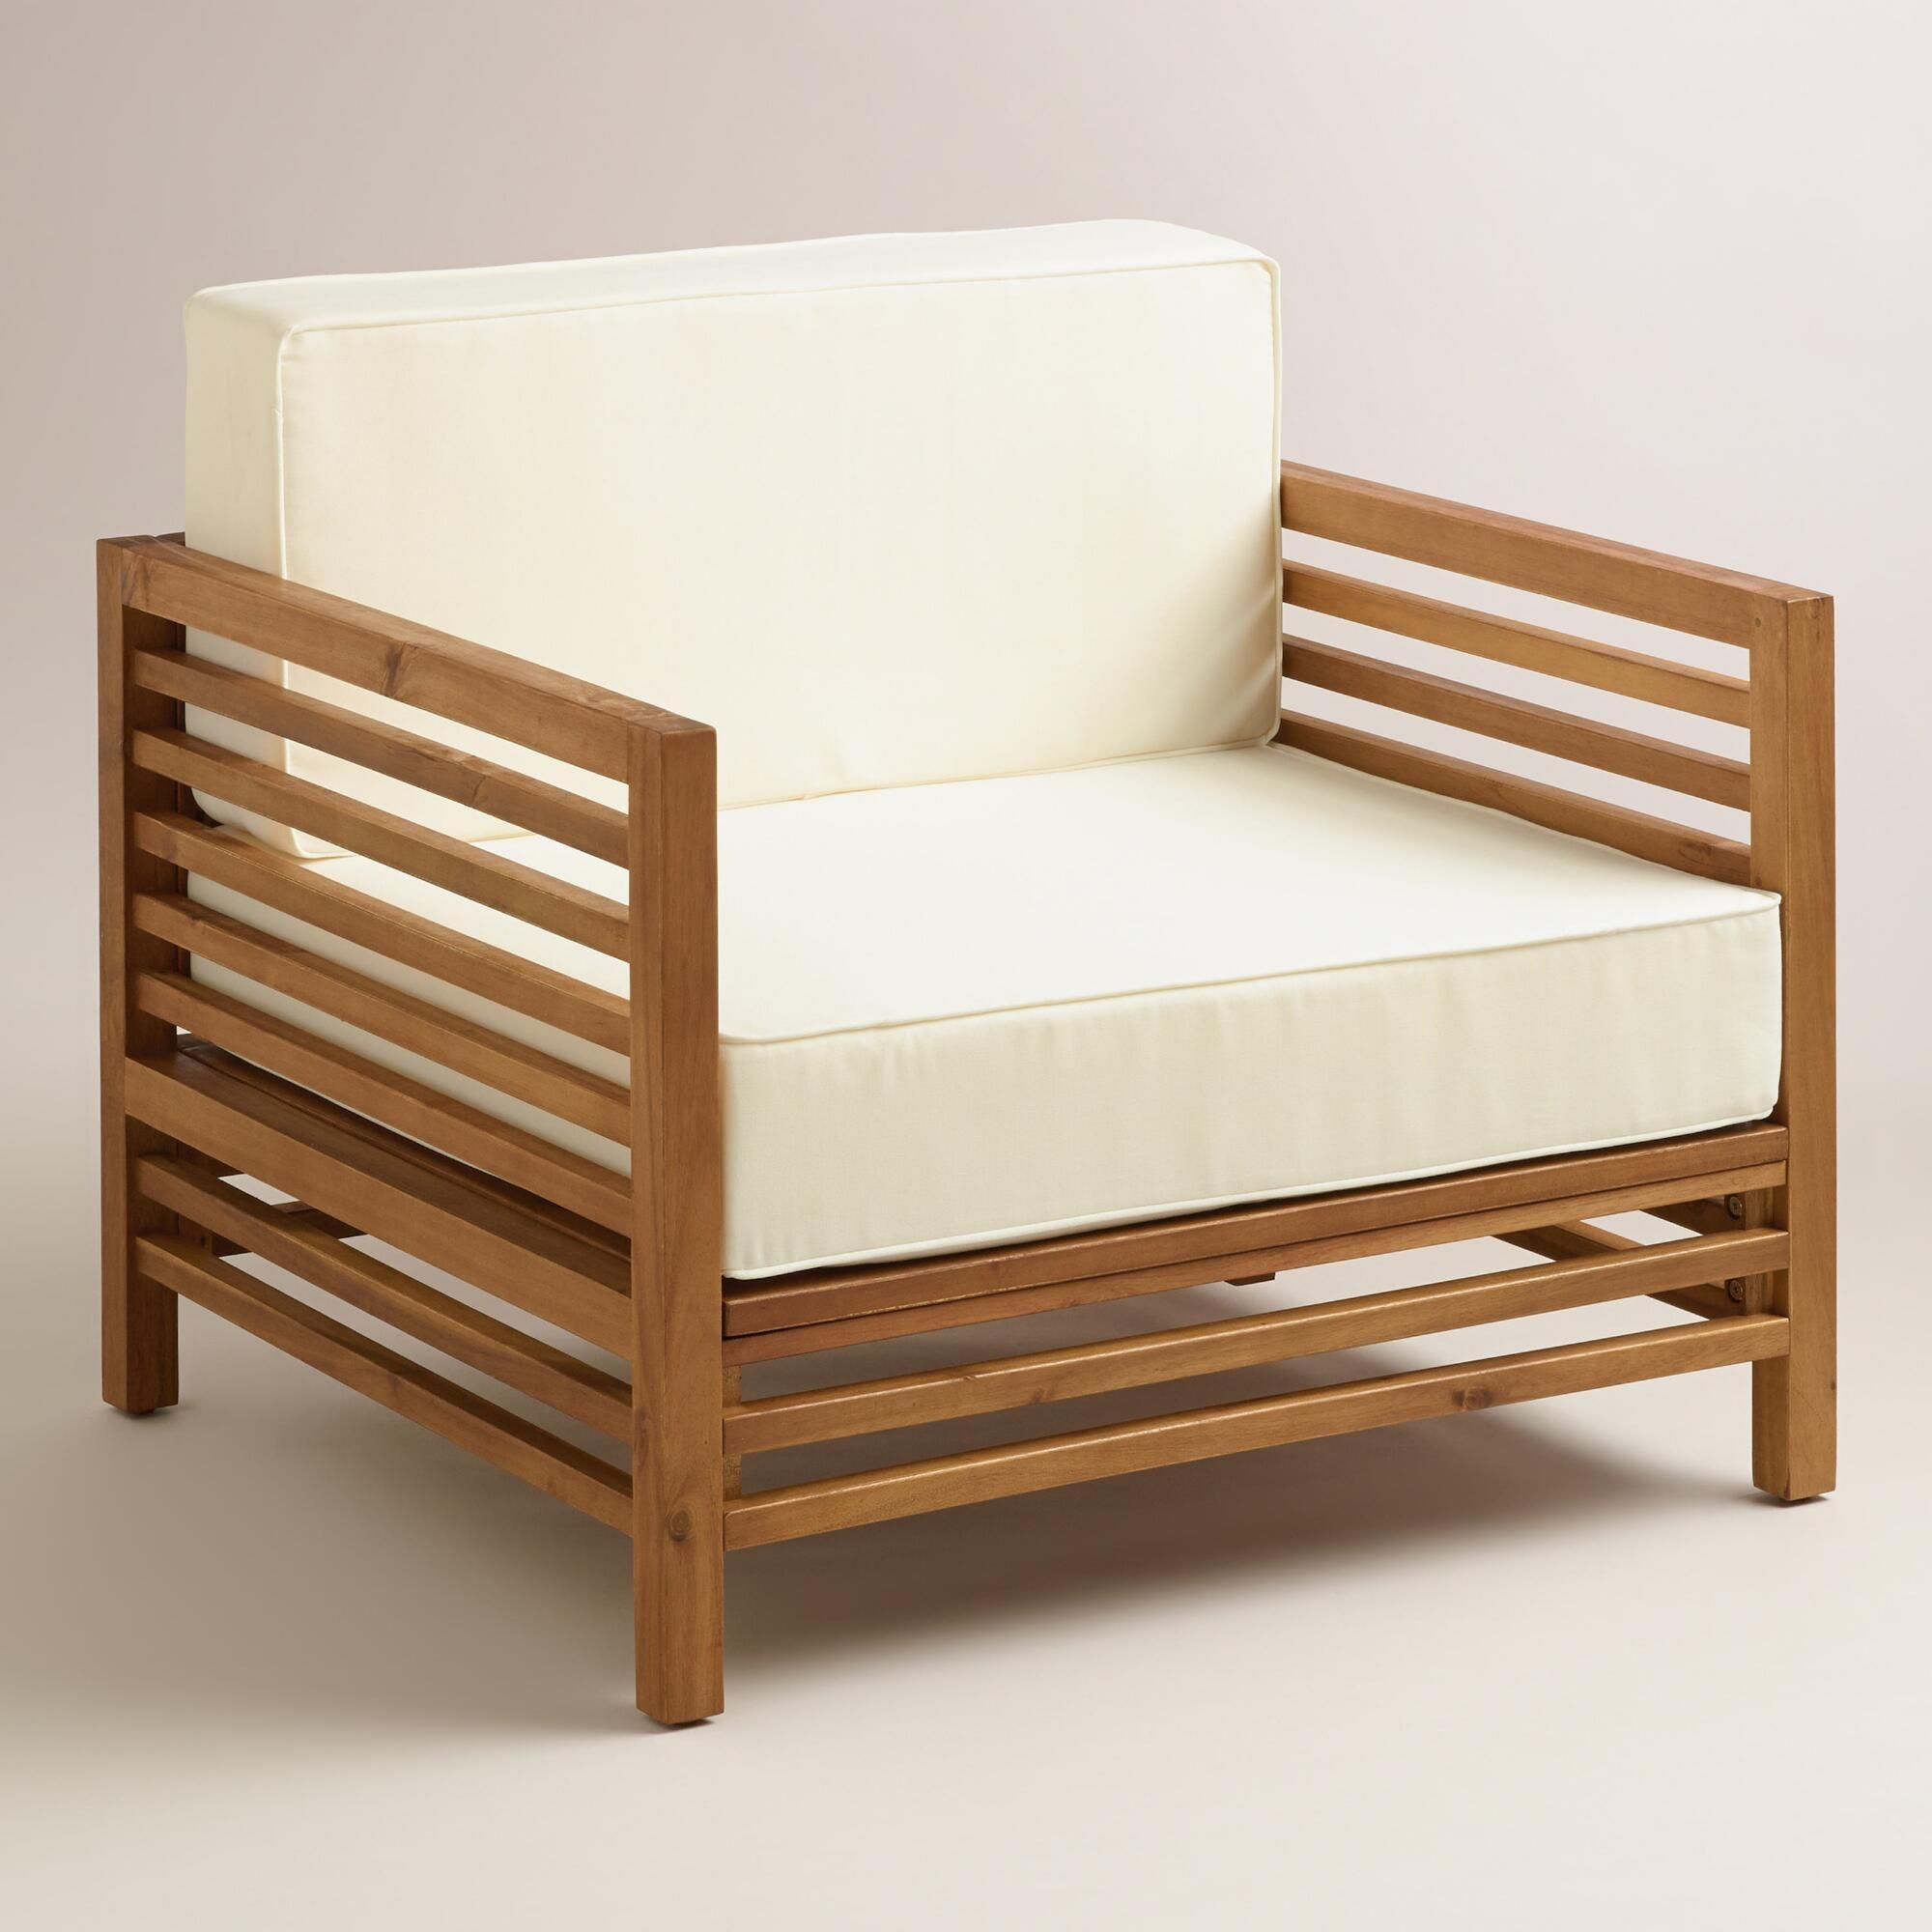 With A Comfy Cushion, It Boasts A Deep, Wide Seat And A Chunky,